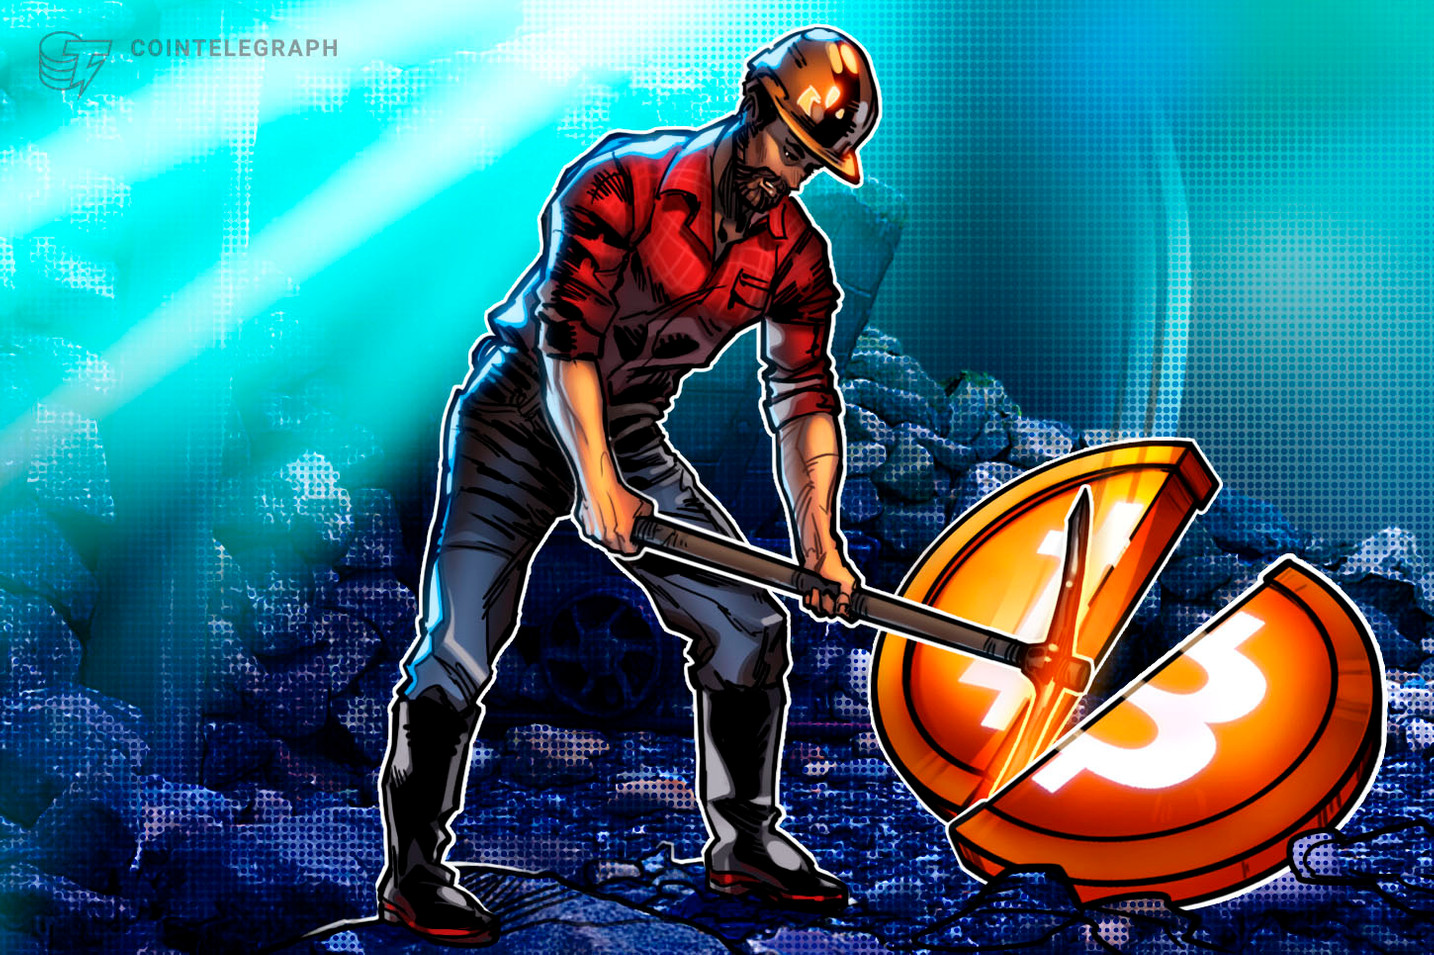 Did BTC Miners Crash Bitcoin Price With 51 Days Before the Halving?